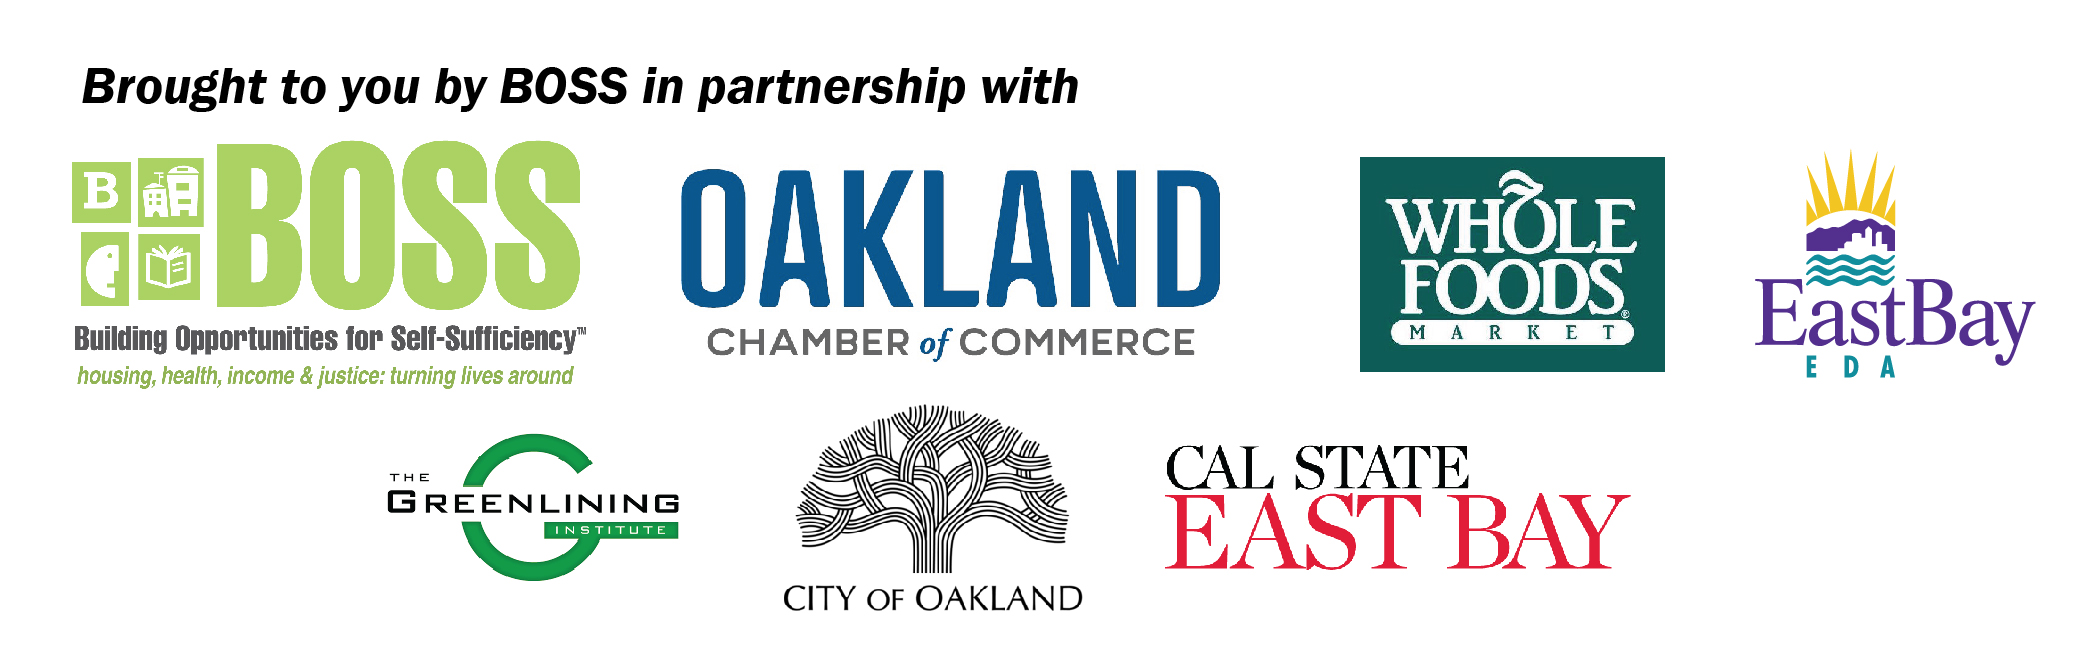 BOSS Logo, Oakland Chamber Logo, Whole Foods Logo, East Bay EDA Logo, Greenlining Institute Logo, City of Oakland Logo, Cal State East Bay Logo